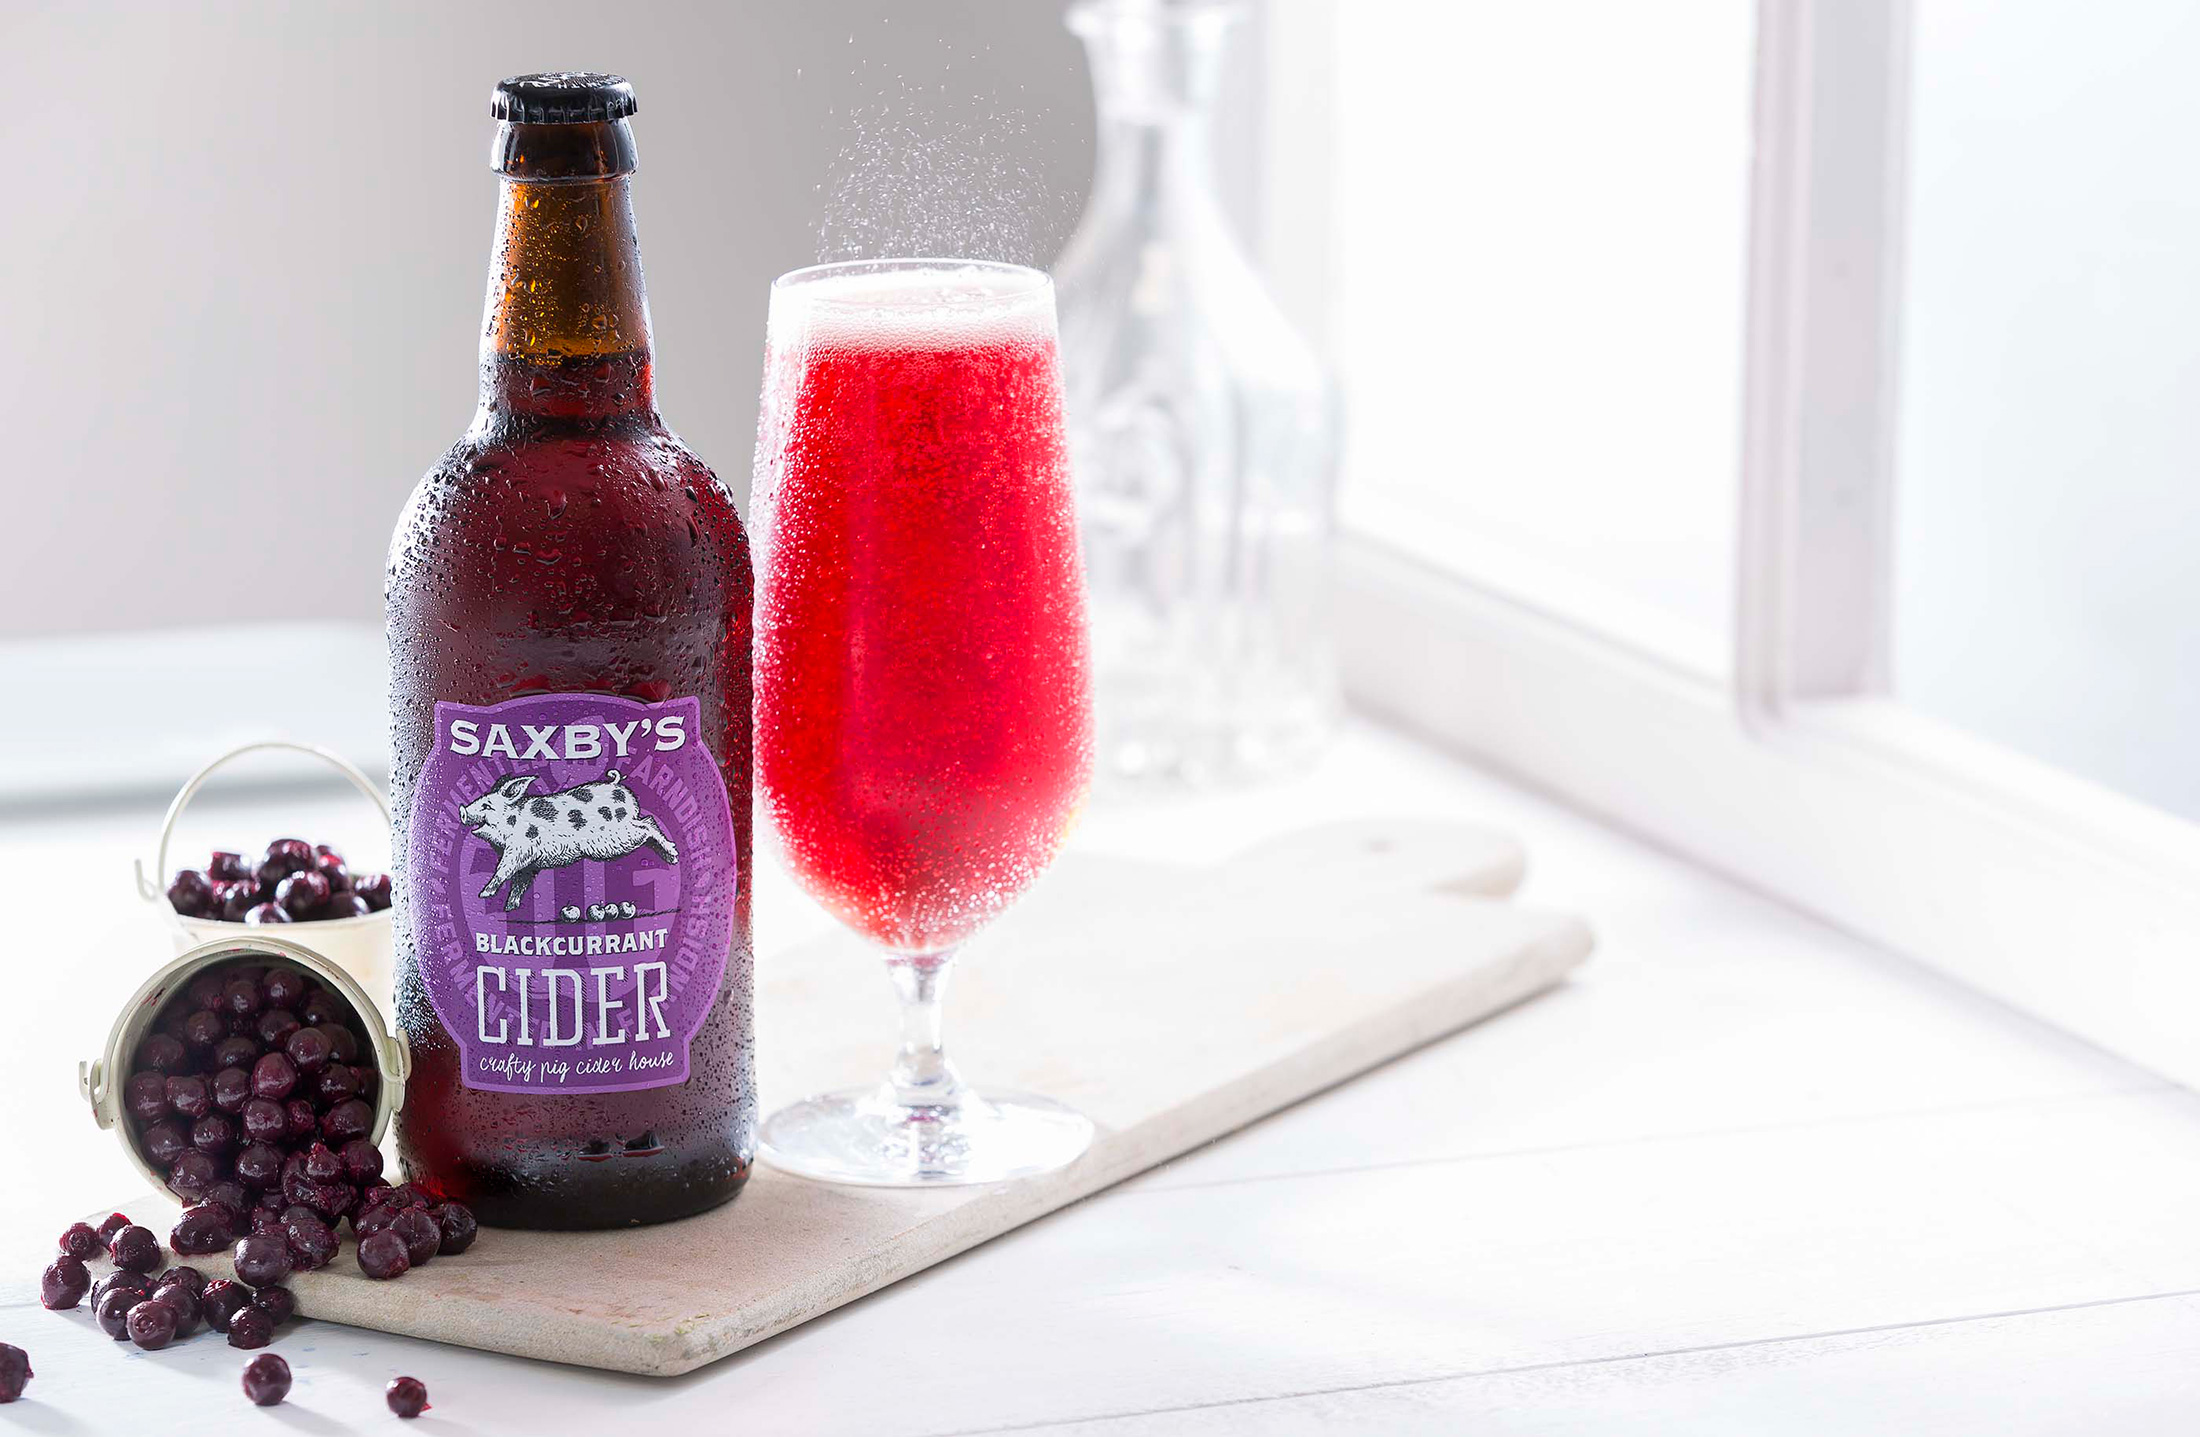 """""""Glorious blackcurrant red with lots of life in those shiny bubbles. Heady blackcurrant on the nose with a refreshing dryness to it. Well balanced sweetness with the tannic dryness making for a very pleasant mouthful with a long fruity finish. Appreciated the use of home grown blackcurrants and these are certainly the hero of the flavours, and well represented in a jolly decent cider."""" - 2019 Great Taste Judges' comments bout Saxby's Blackcurrant Cider"""